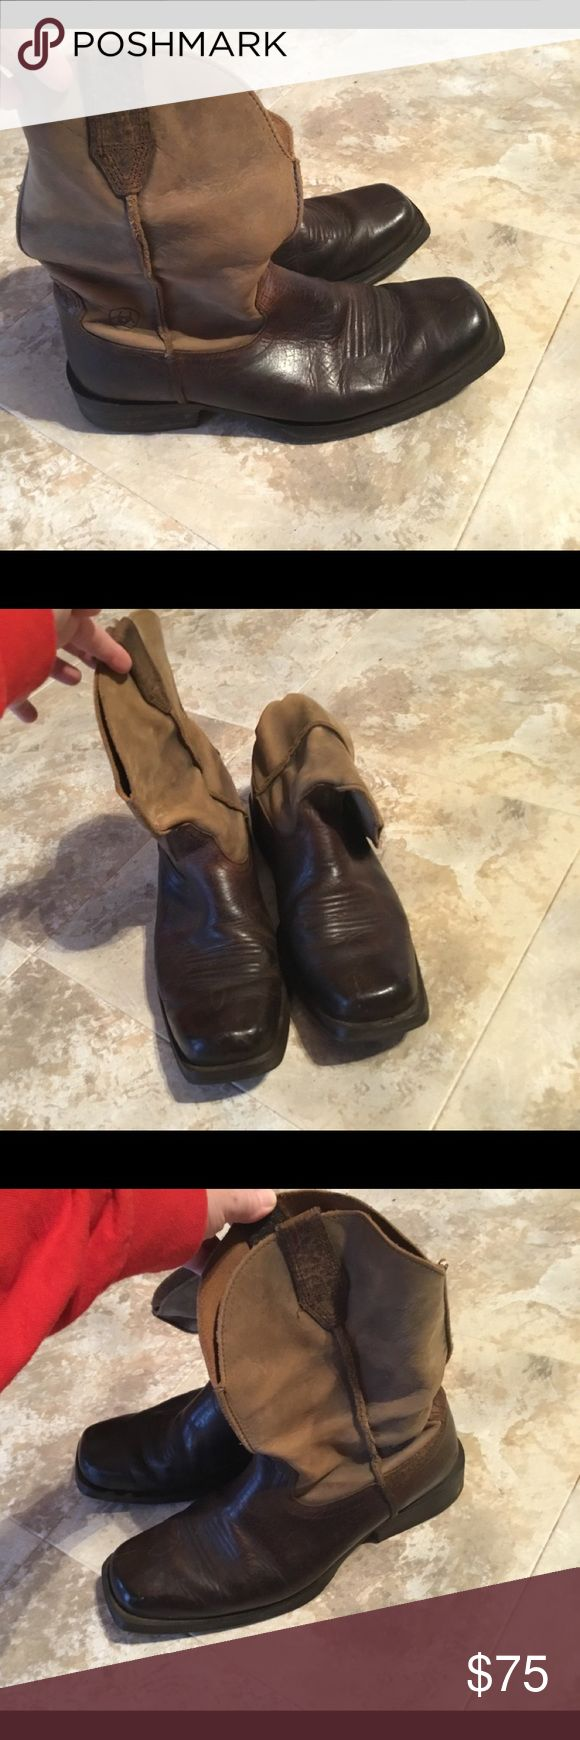 Ariat Cowboy Work Boots, size 10.5 D Selling my husbands Ariat boots, size 10.5D. Still in Very Good Condition, he just has so many pair he is giving up a few. Shipping is generally within 24 hrs. Smoke free home. Thank you for viewing. Ariat Shoes Boots